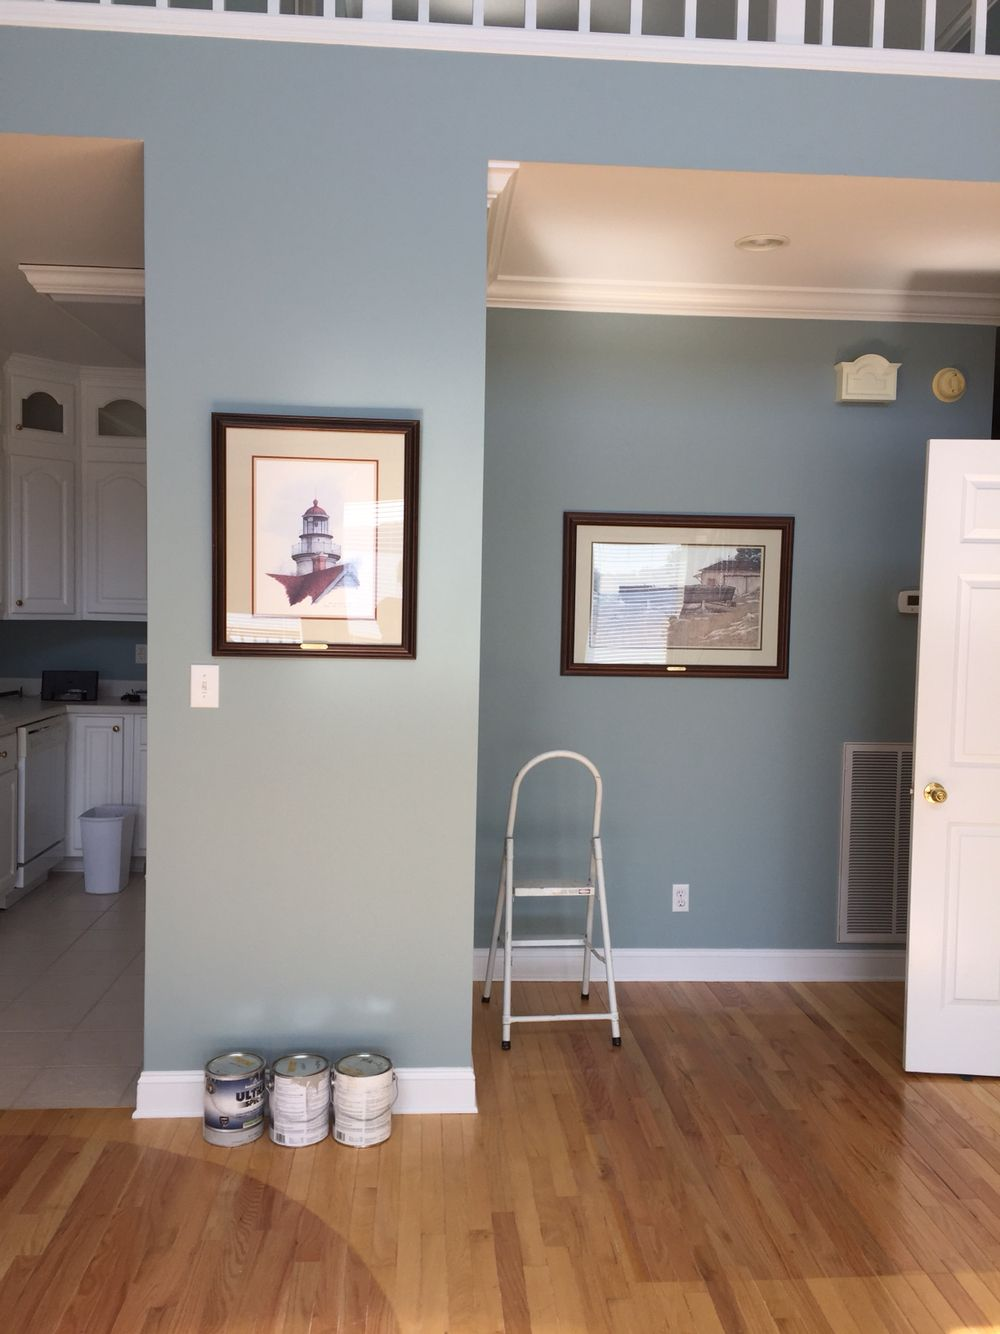 Benjamin Moore Kentucky Haze Try Lightening By 50 For Walls White Cabinets Wainscoting